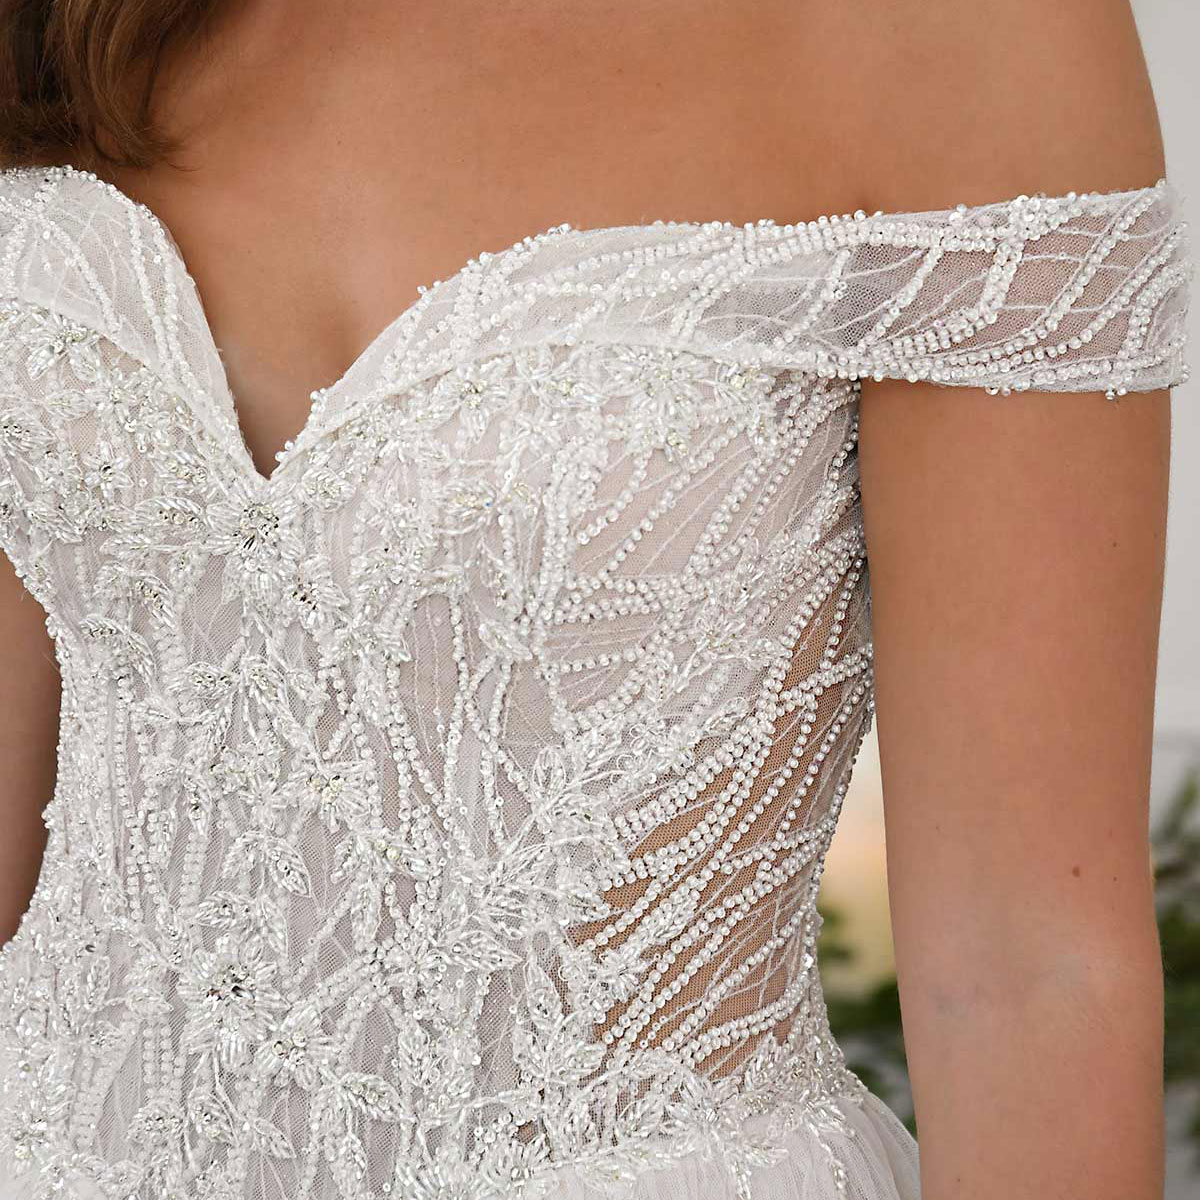 Graphic lace and dazzling beadwork on the bodice of this ballgown wedding dress